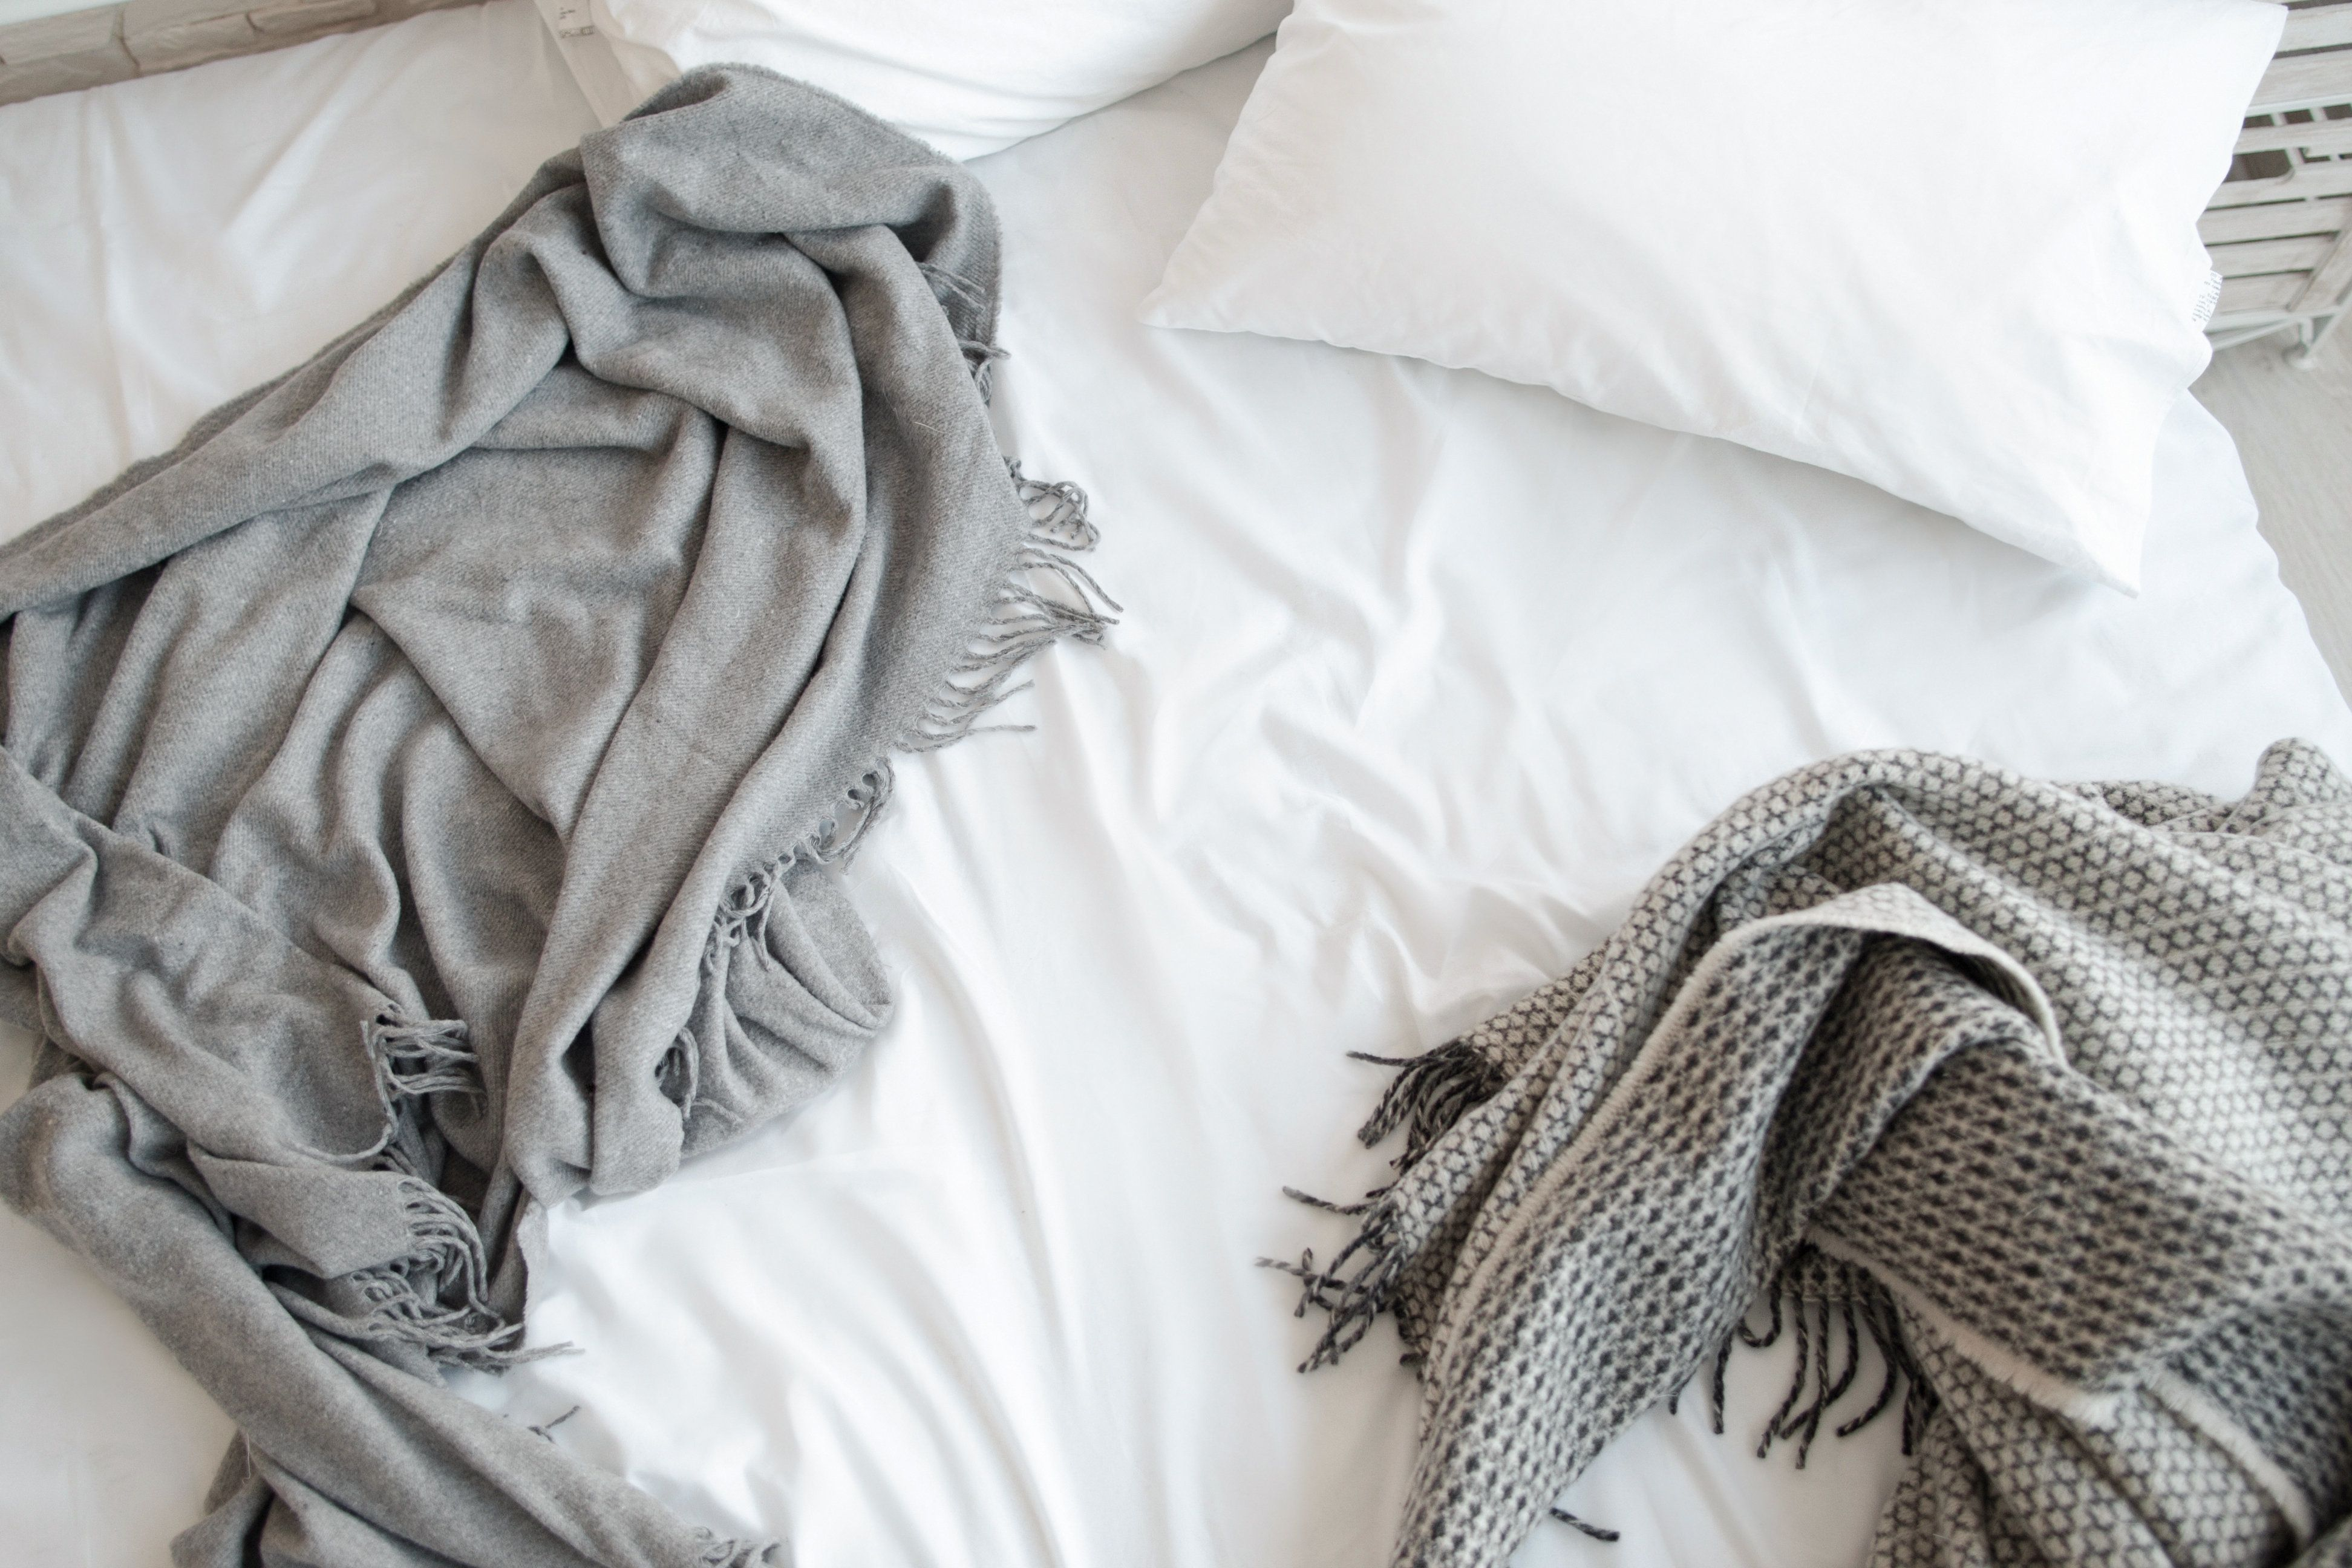 When Choosing Bedding To Keep You Cool, Avoid Synthetic Materials And  Instead Choose Breathable Natural